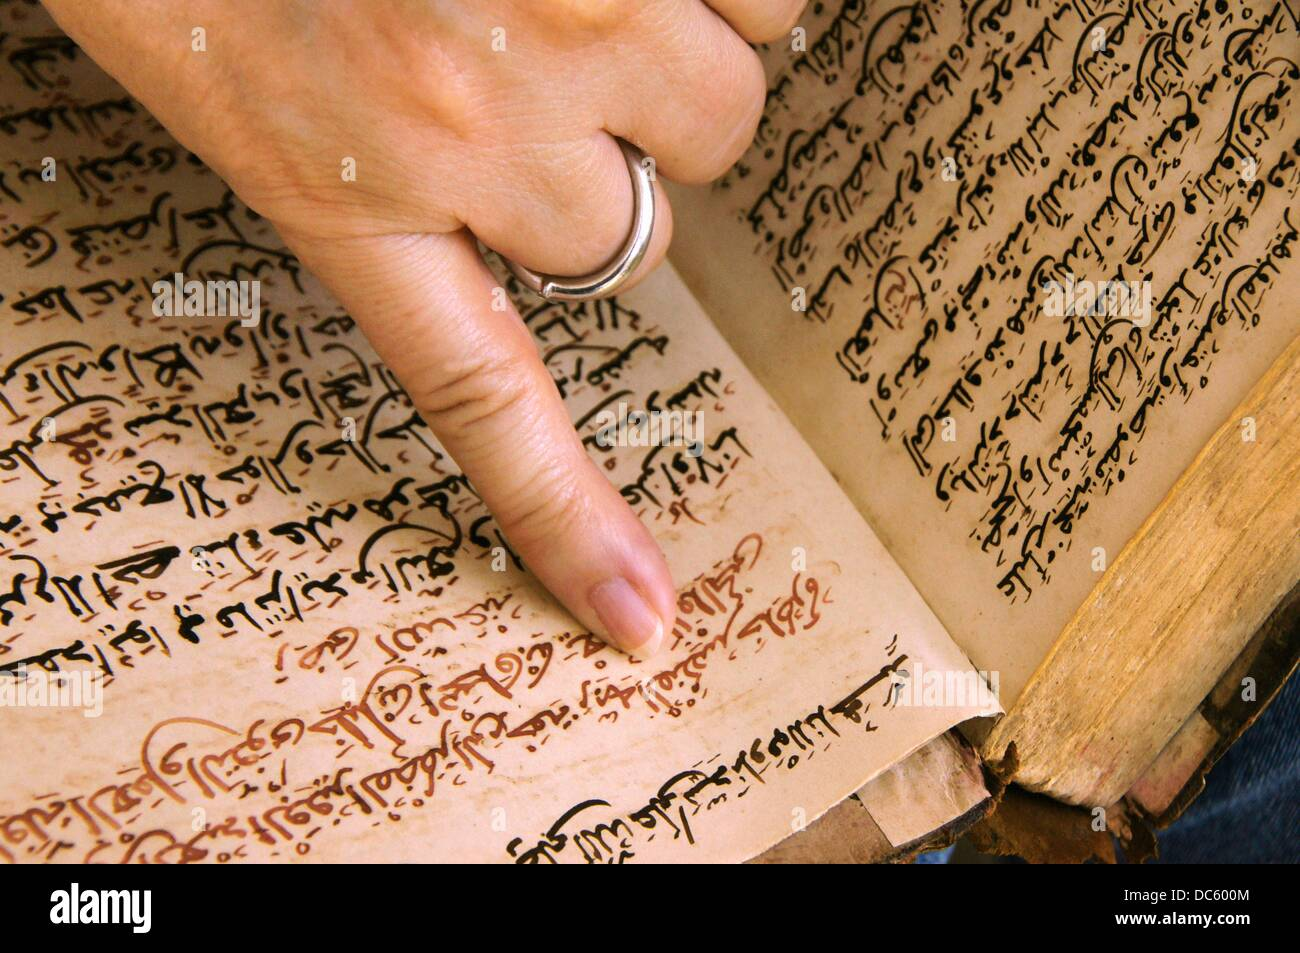 Islam Tafsir Exegesis Of The Quran By Abdel Farik Al Moftara Written In Arabic With Andalusy Punctuation 18th Century